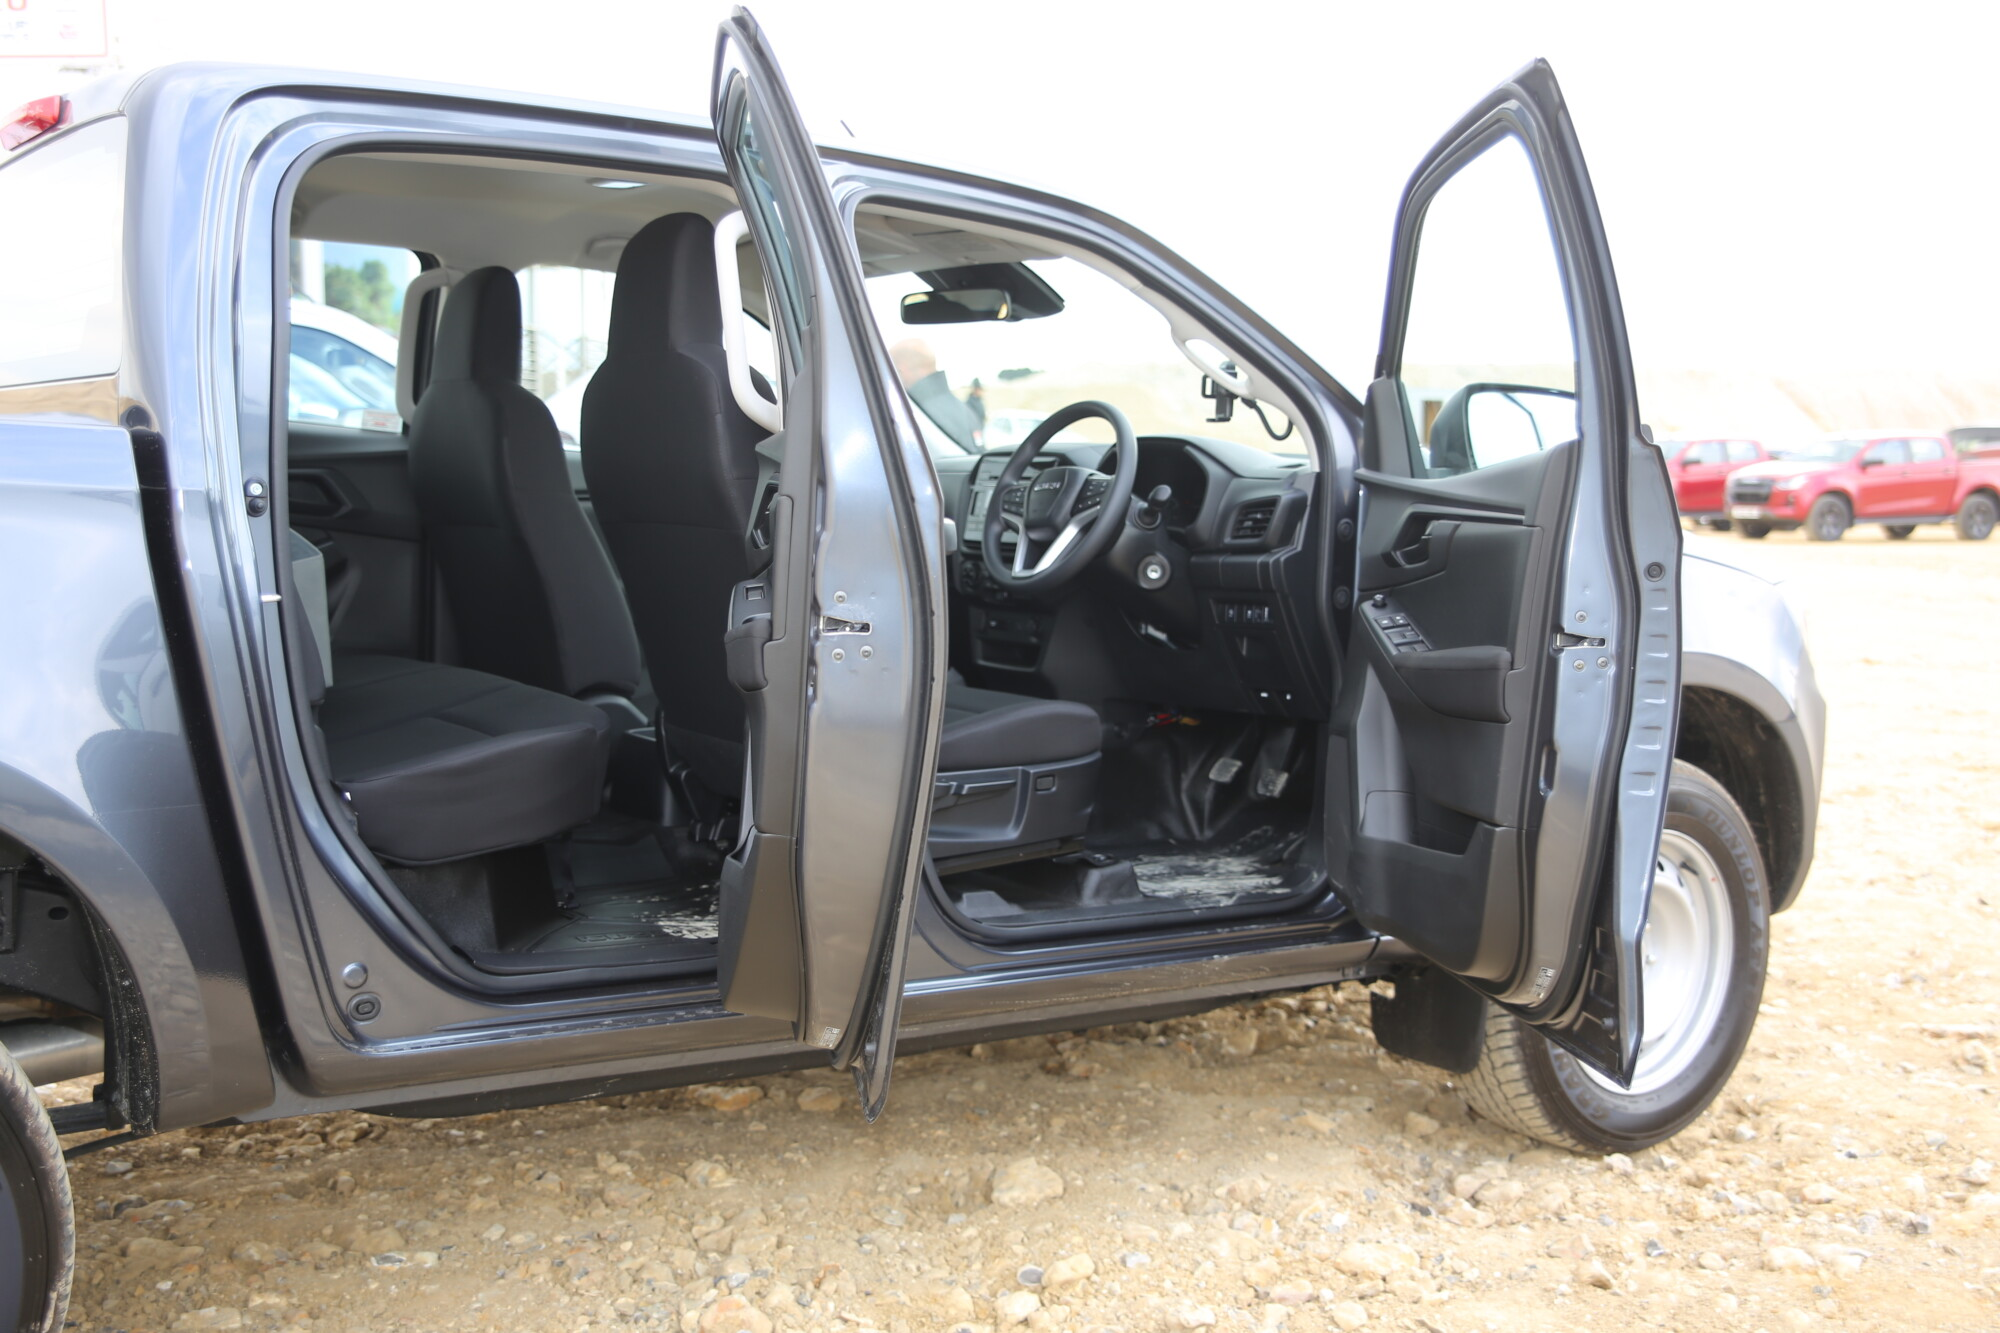 The load bed is longer, the cab is longer with improved rear seat access but the overall length is less.